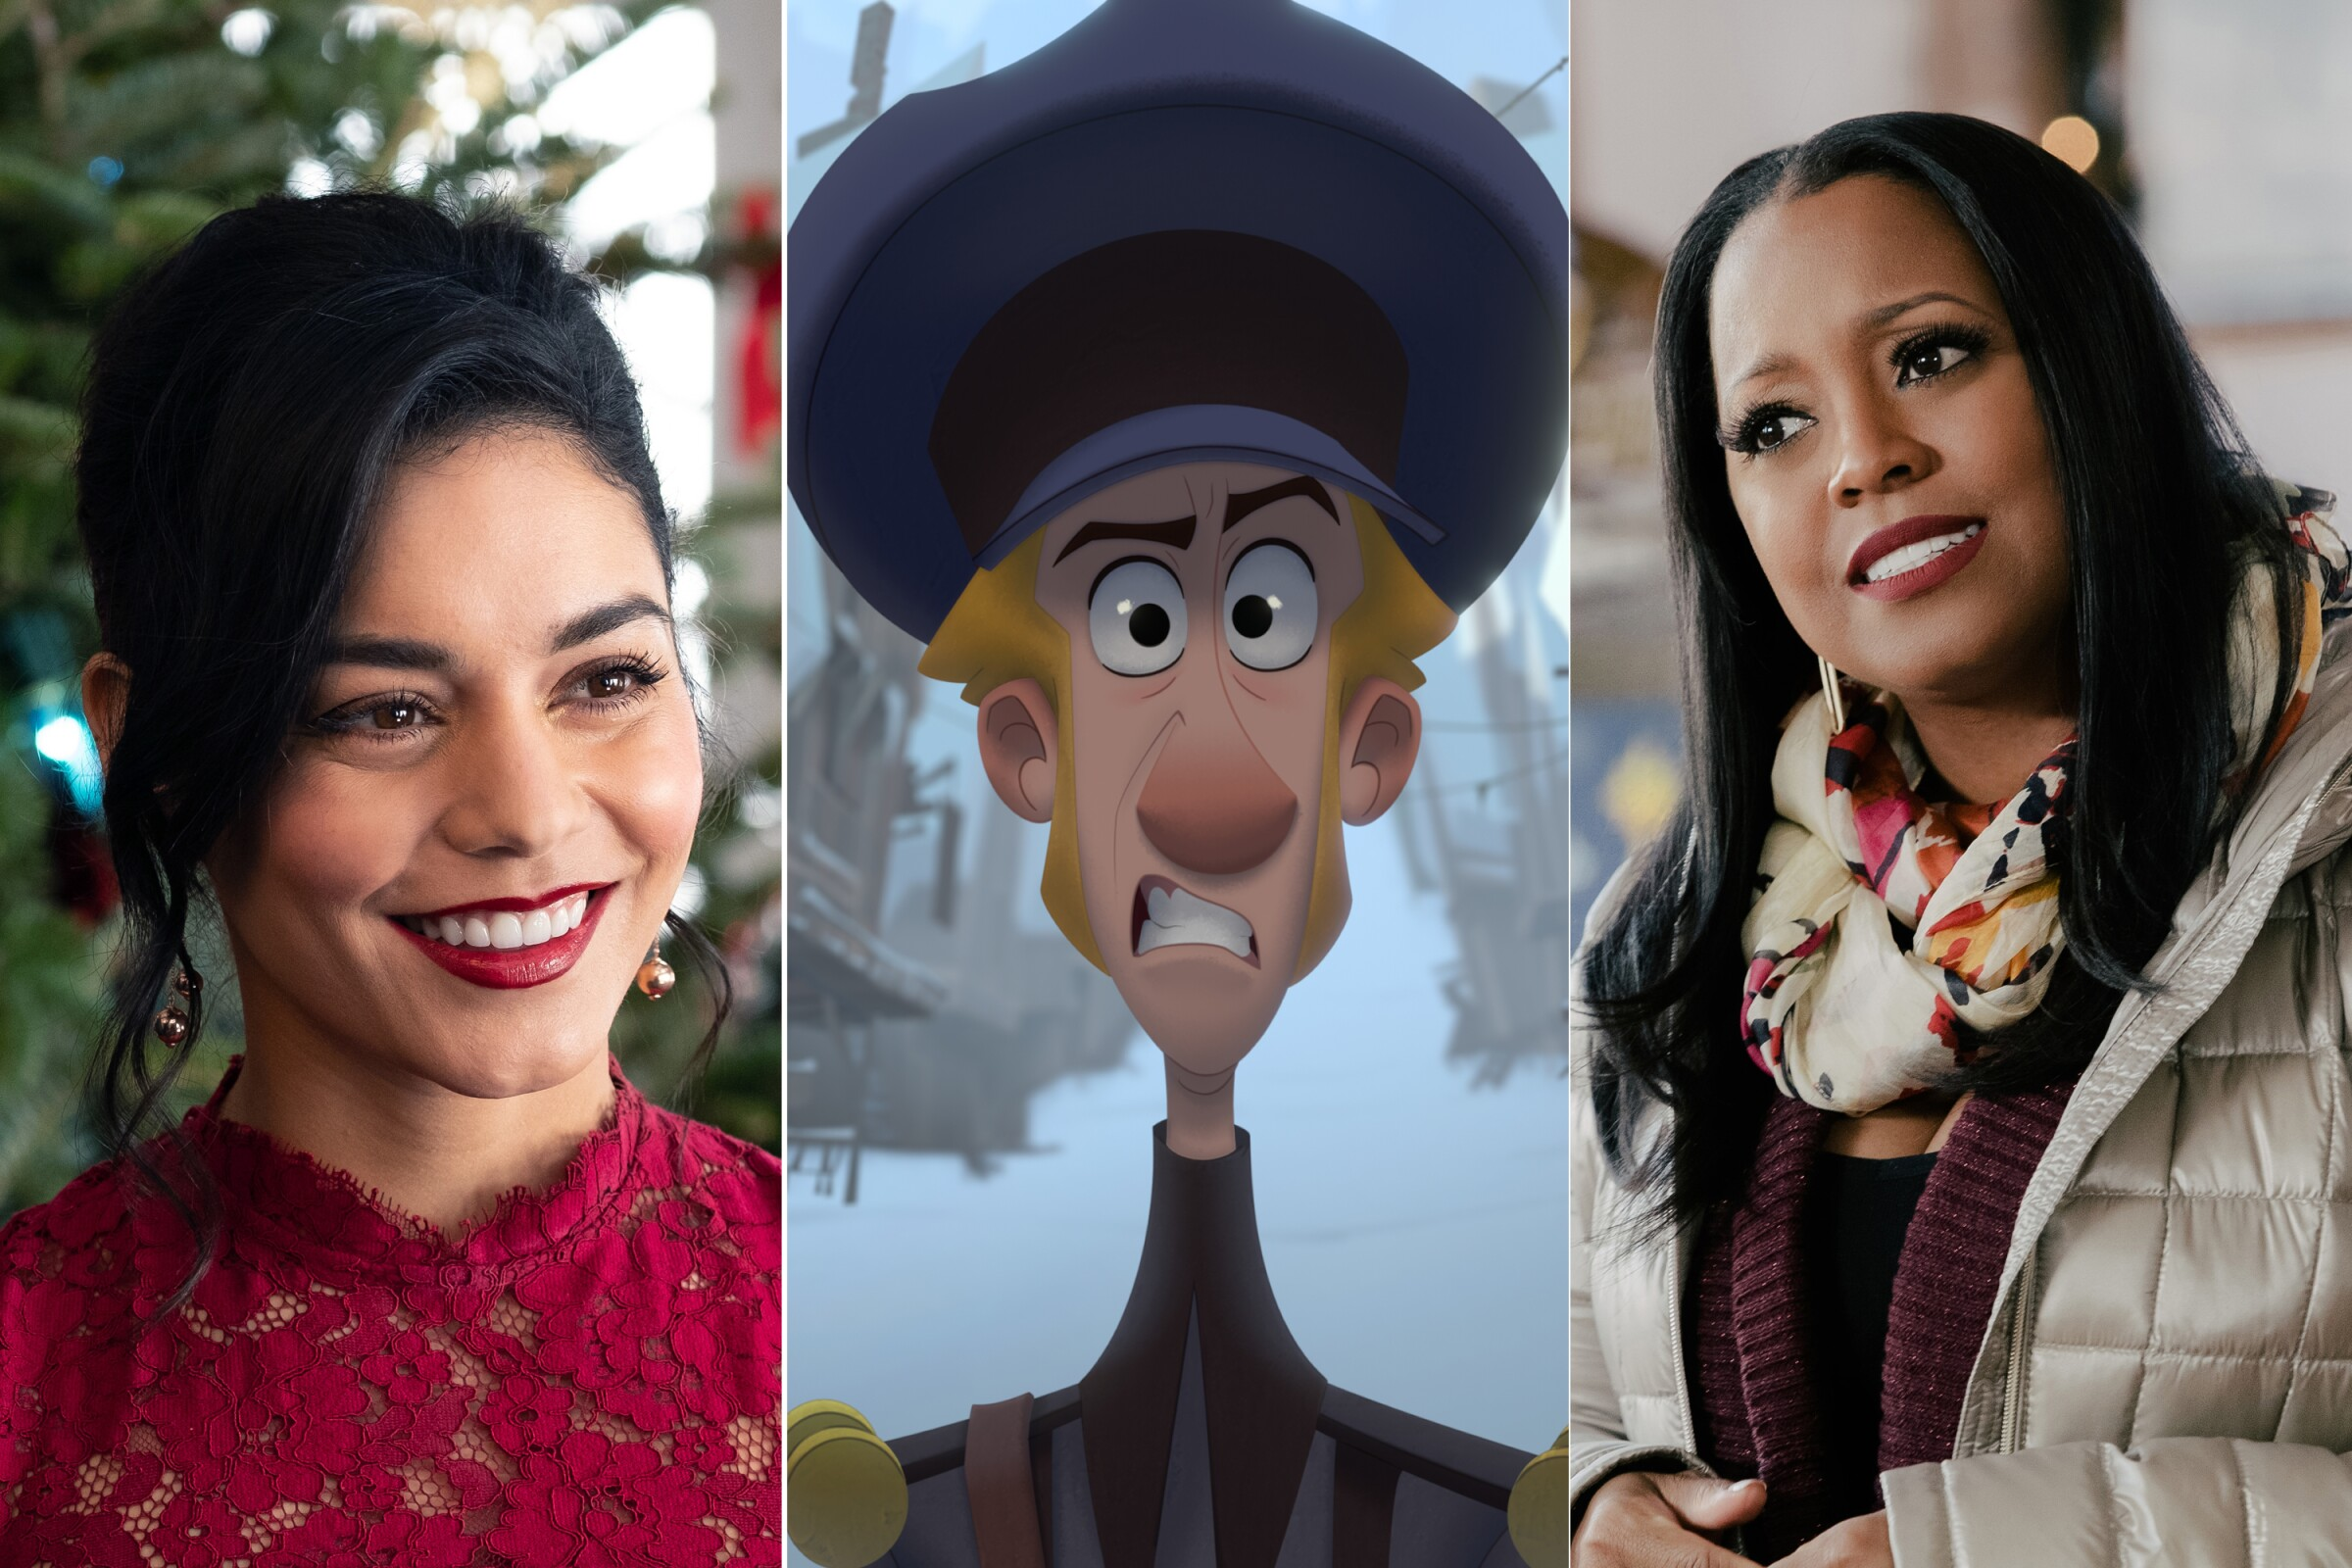 Ho, ho, ho: 10 new holiday movies to stream with family and friends - Los Angeles Times